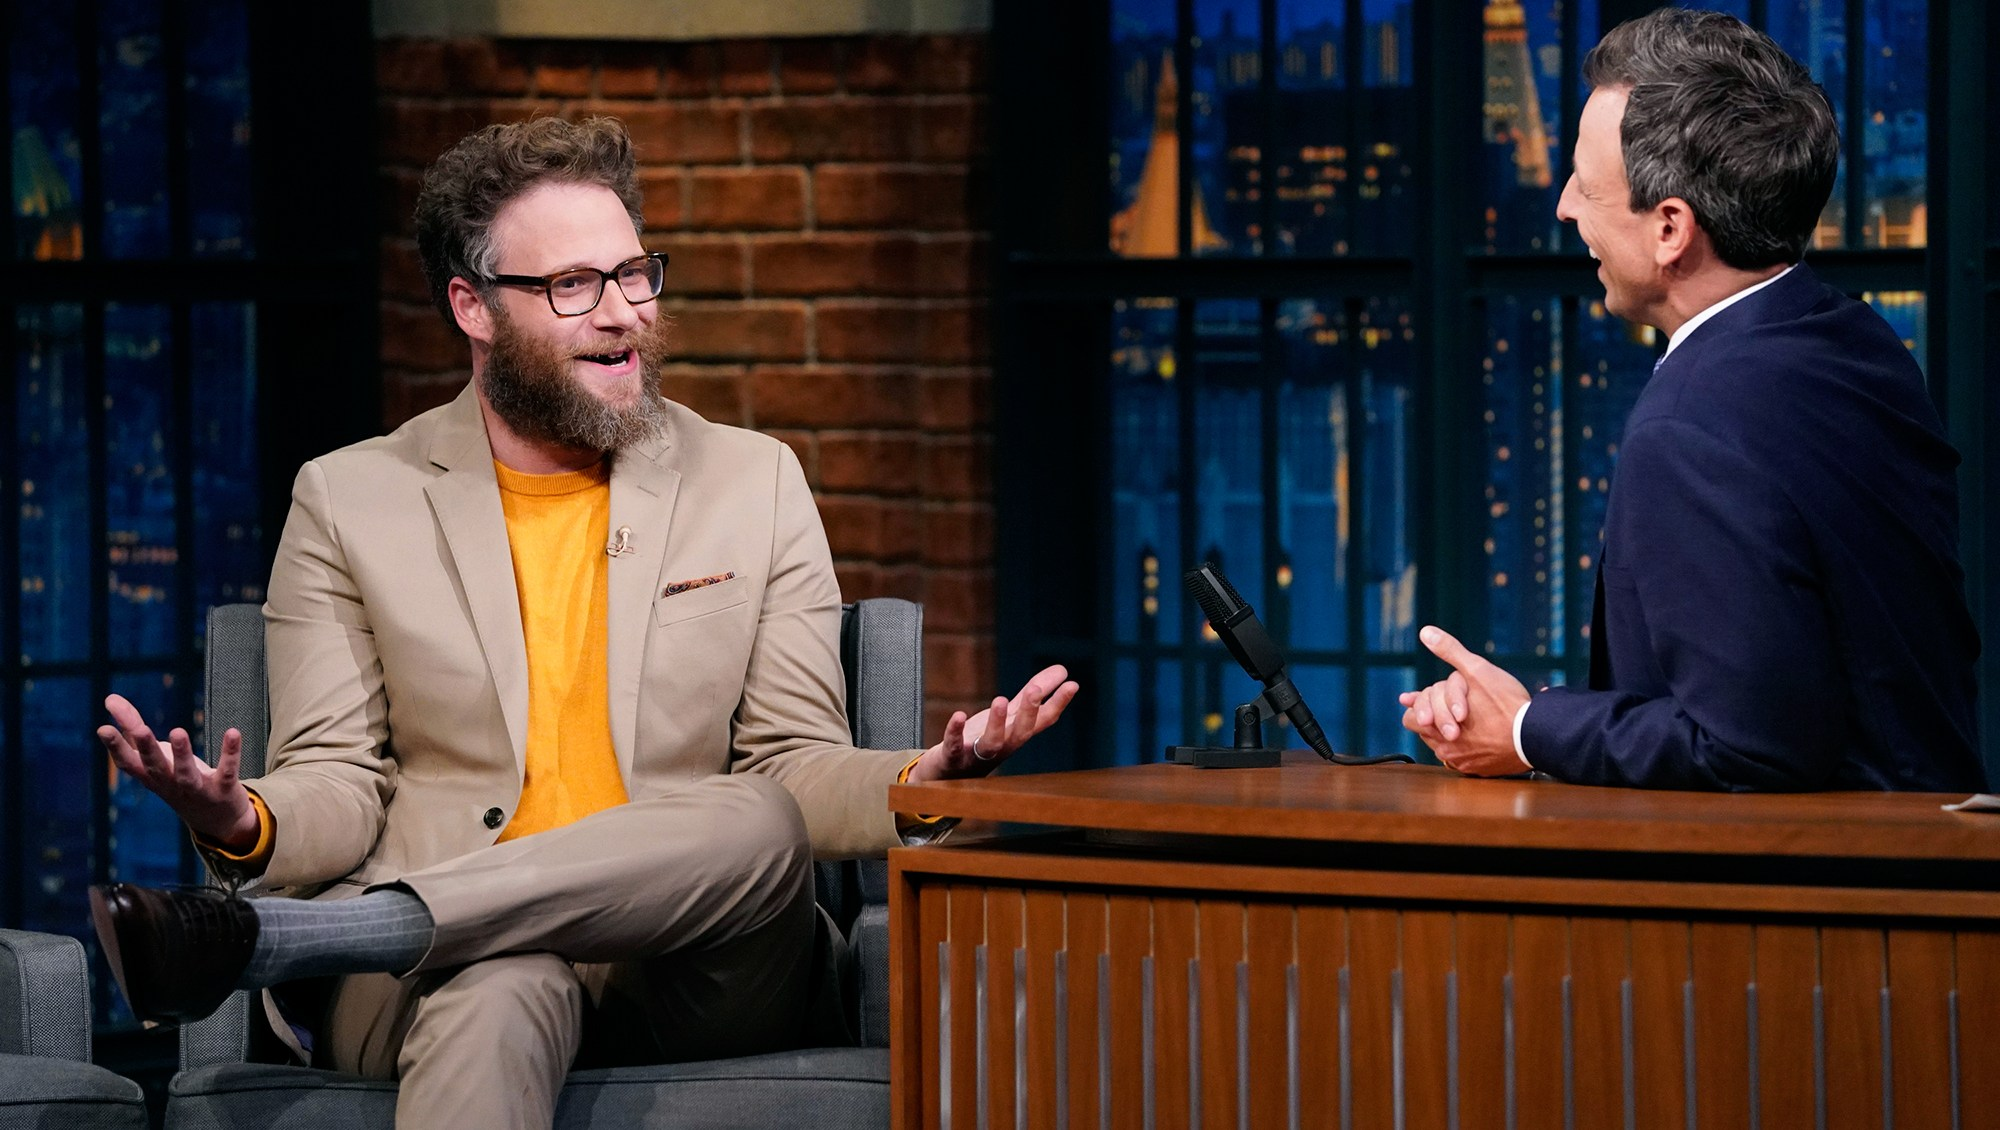 Seth Rogen during an interview with host Seth Meyers on August 8, 2018.